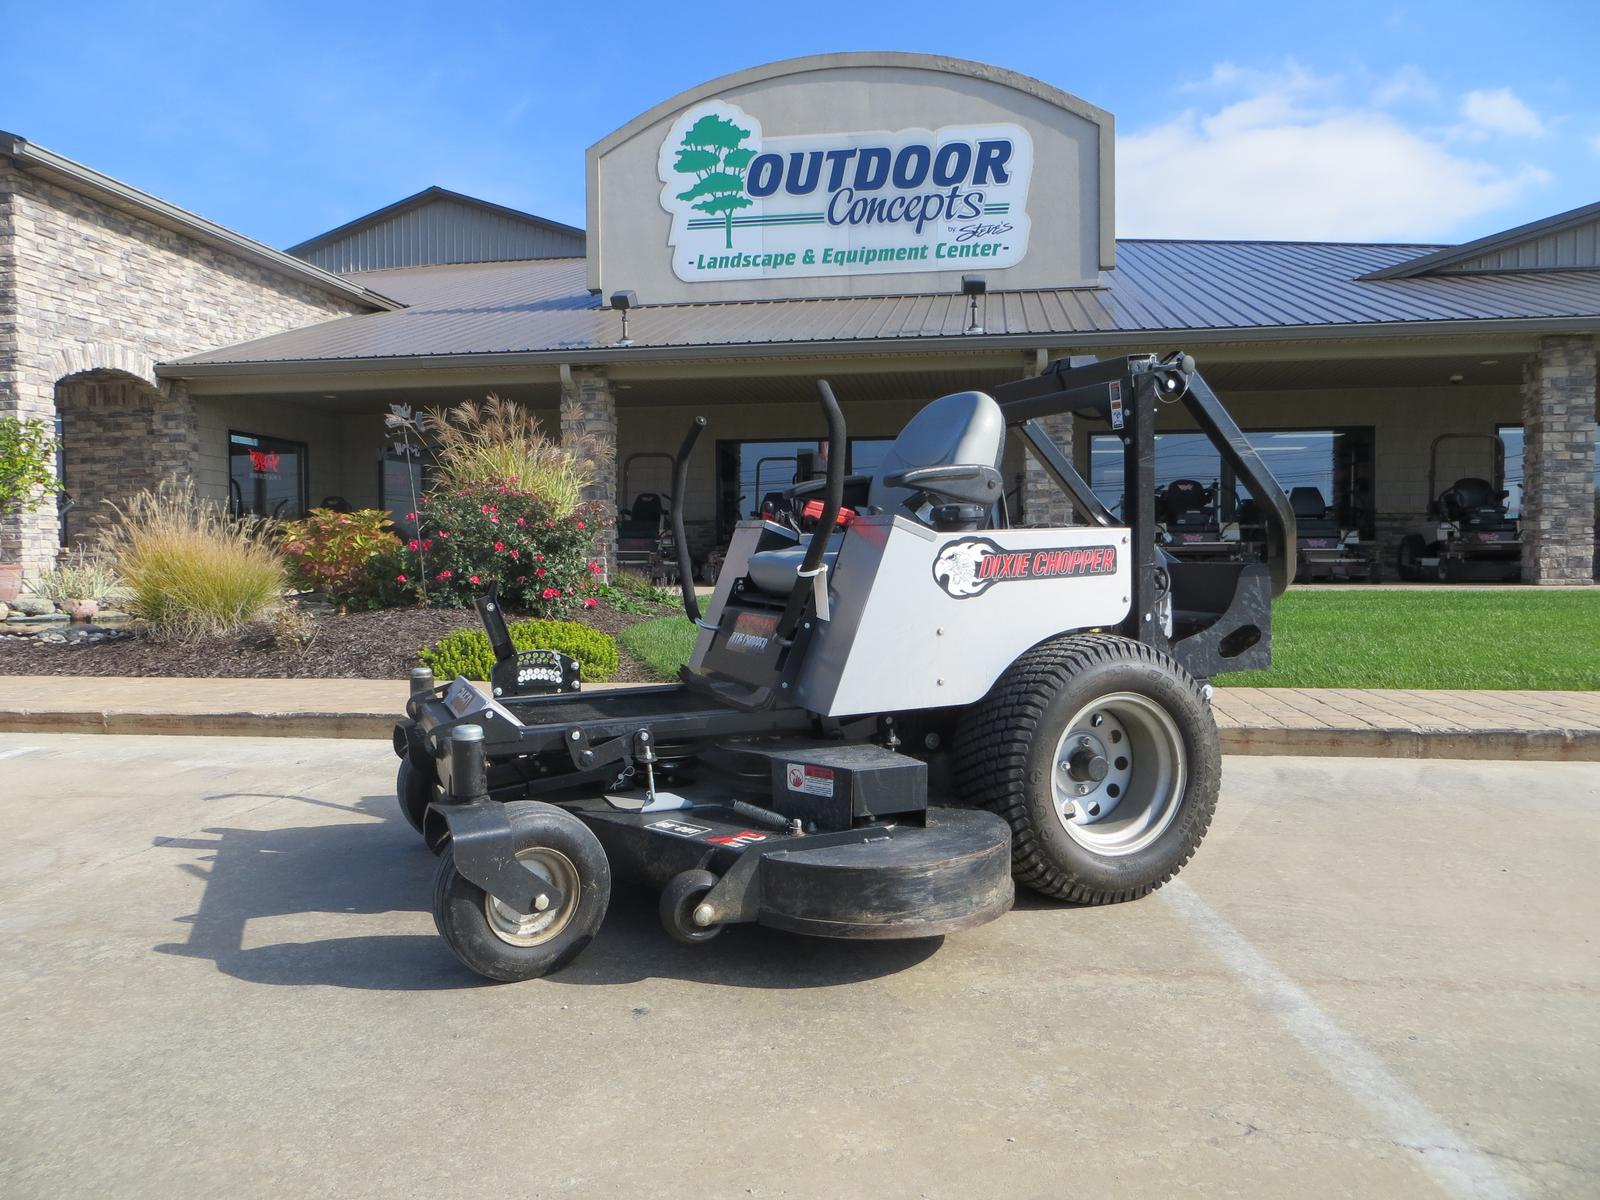 Inventory from Toro and Dixie Chopper Outdoor Concepts Inc